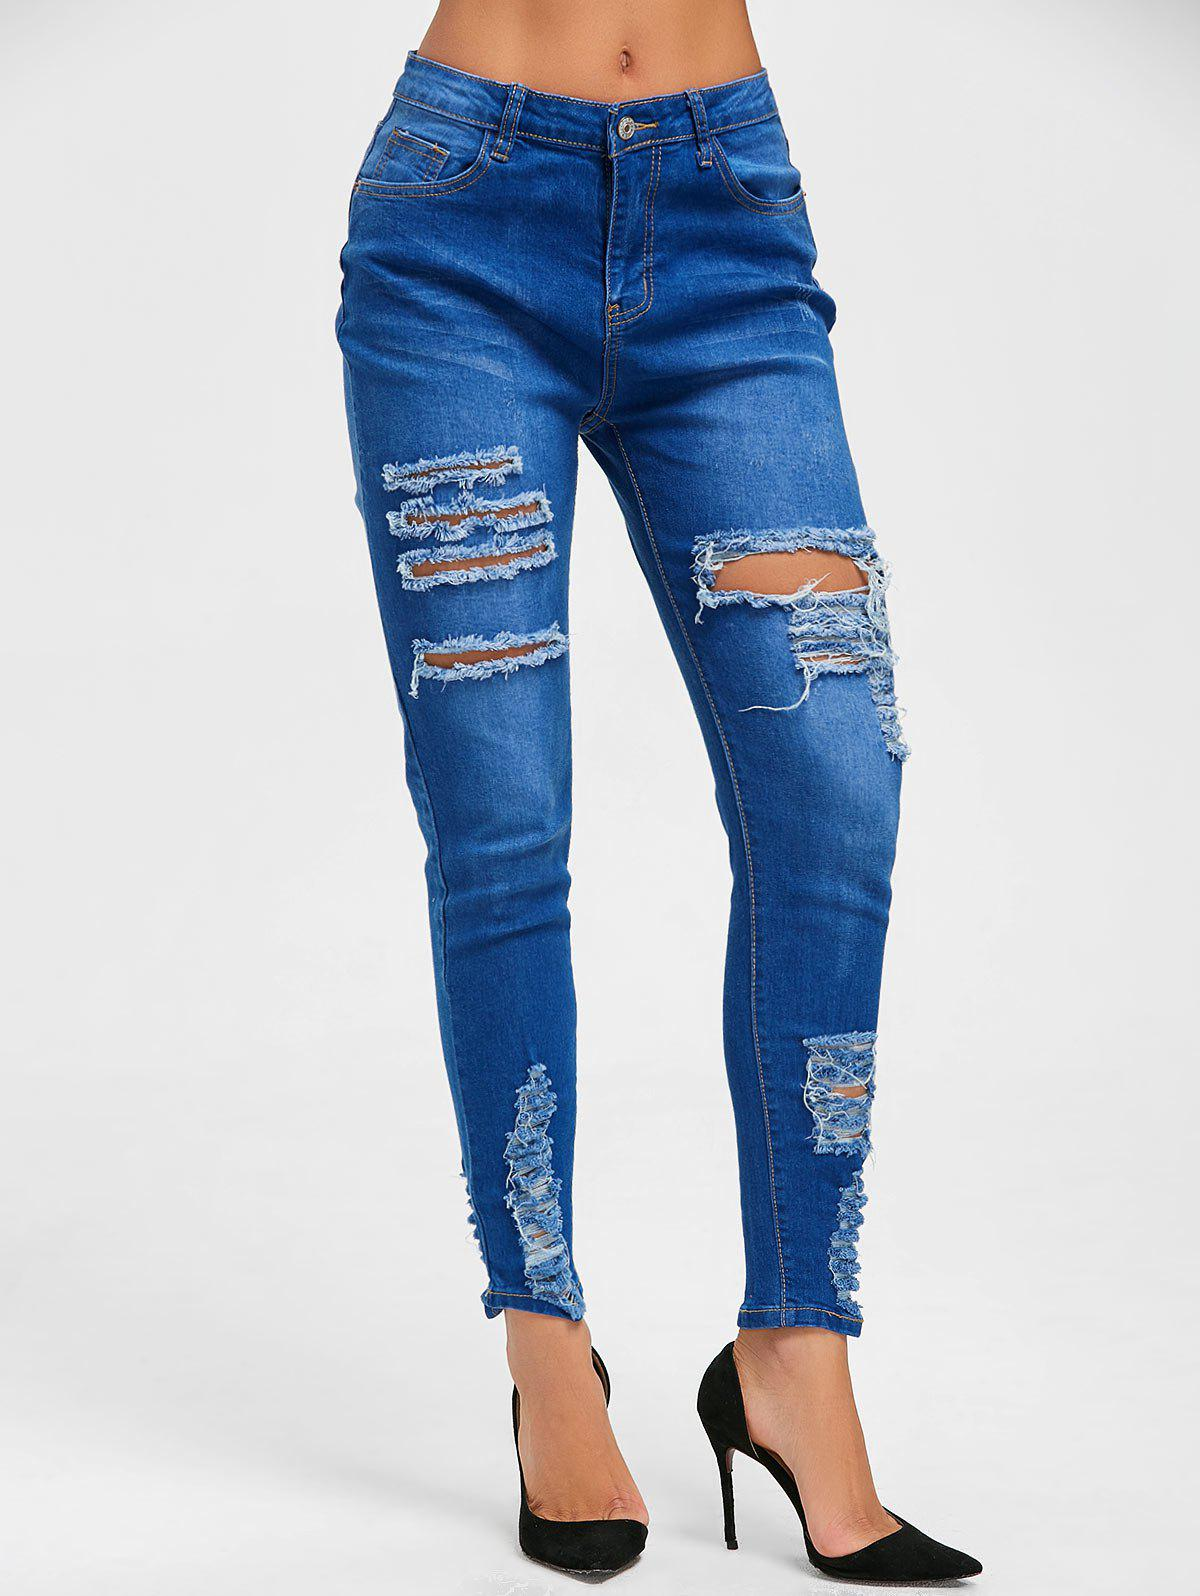 High Rise Distressed Denim JeansWOMEN<br><br>Size: 2XL; Color: BLUE; Material: Cotton,Polyester; Length: Normal; Fabric Type: Denim; Wash: Destroy Wash; Fit Type: Skinny; Waist Type: High; Embellishment: Pockets,Ripped; Weight: 0.5700kg; Package Contents: 1 x Jeans;